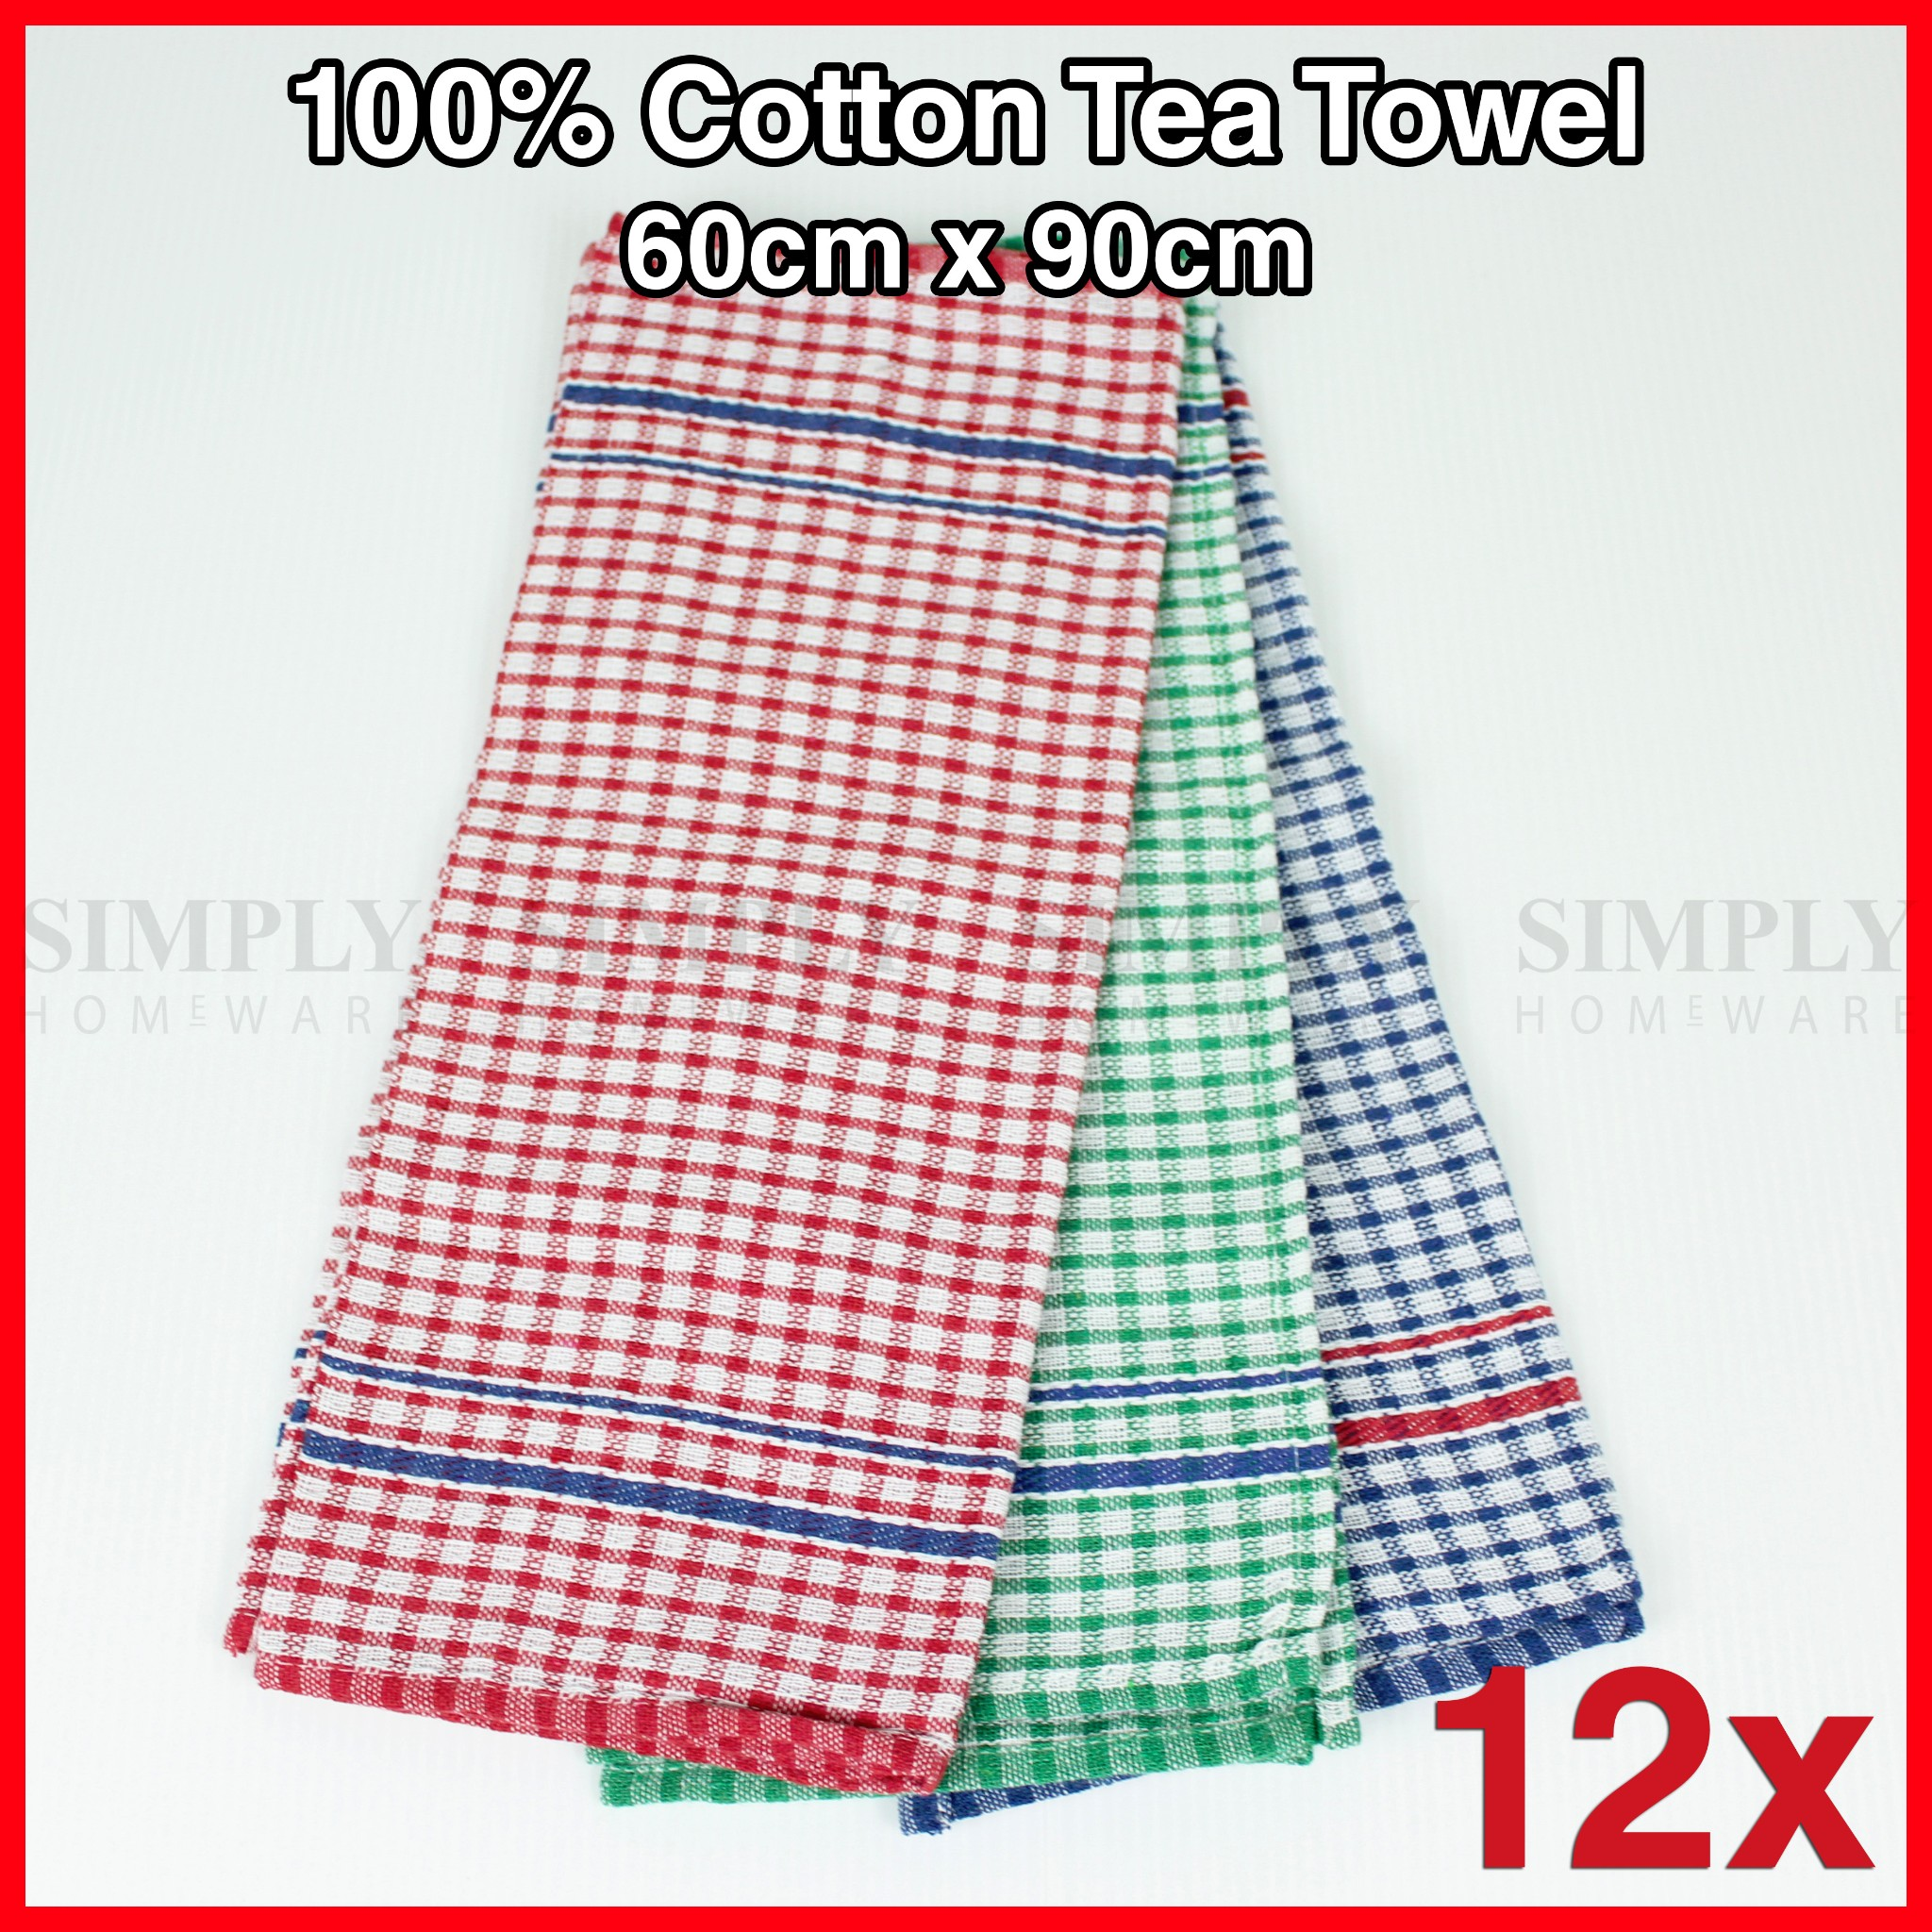 Bulk Tea Towel Hand Teatowels 100% Cotton Hotel Kitchen Linen 60 x 90cm 12 Pack